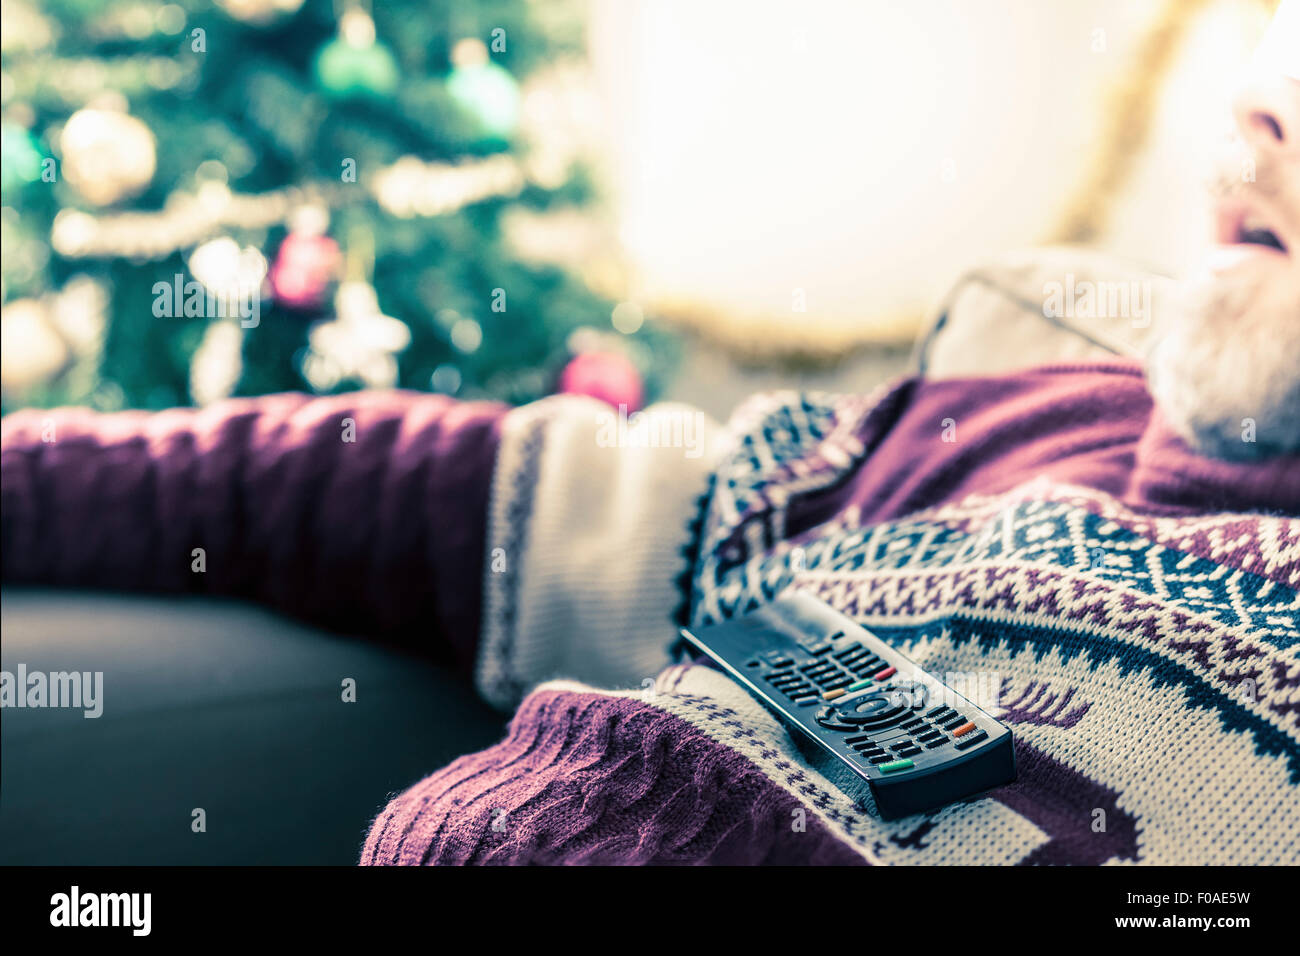 Man wearing sweater asleep with remote control on chest - Stock Image